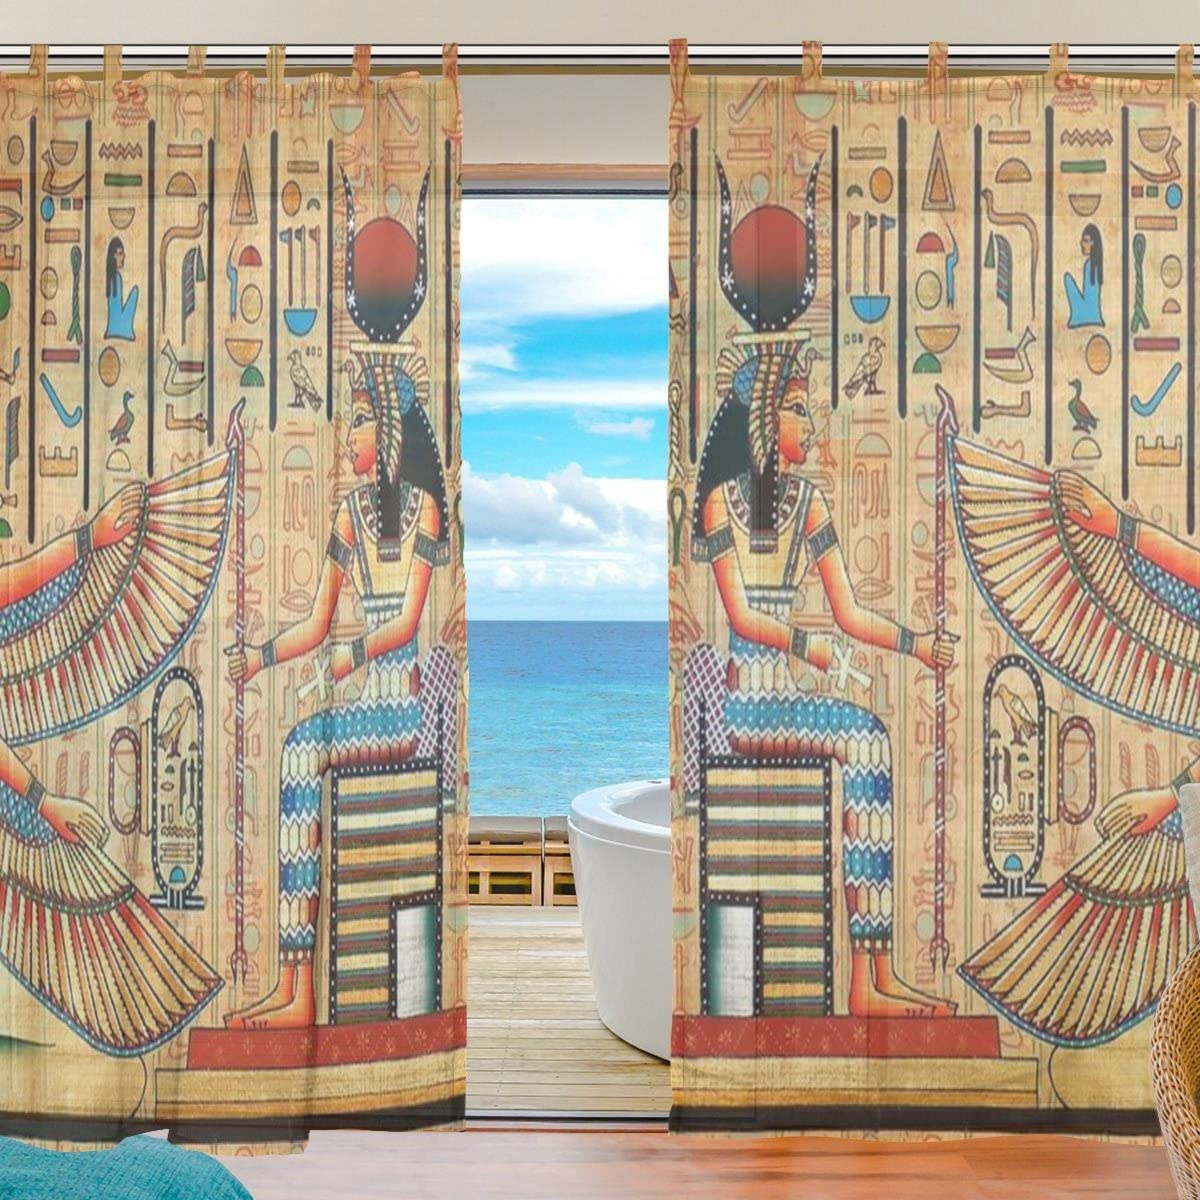 INGBAGS Bedroom Decor Living Room Decorations Retro Ancient Egyptian Art Pattern Print Tulle Polyester Door Window Gauze Sheer Curtain Drape Two Panels Set 55×78 inch,Set of 2